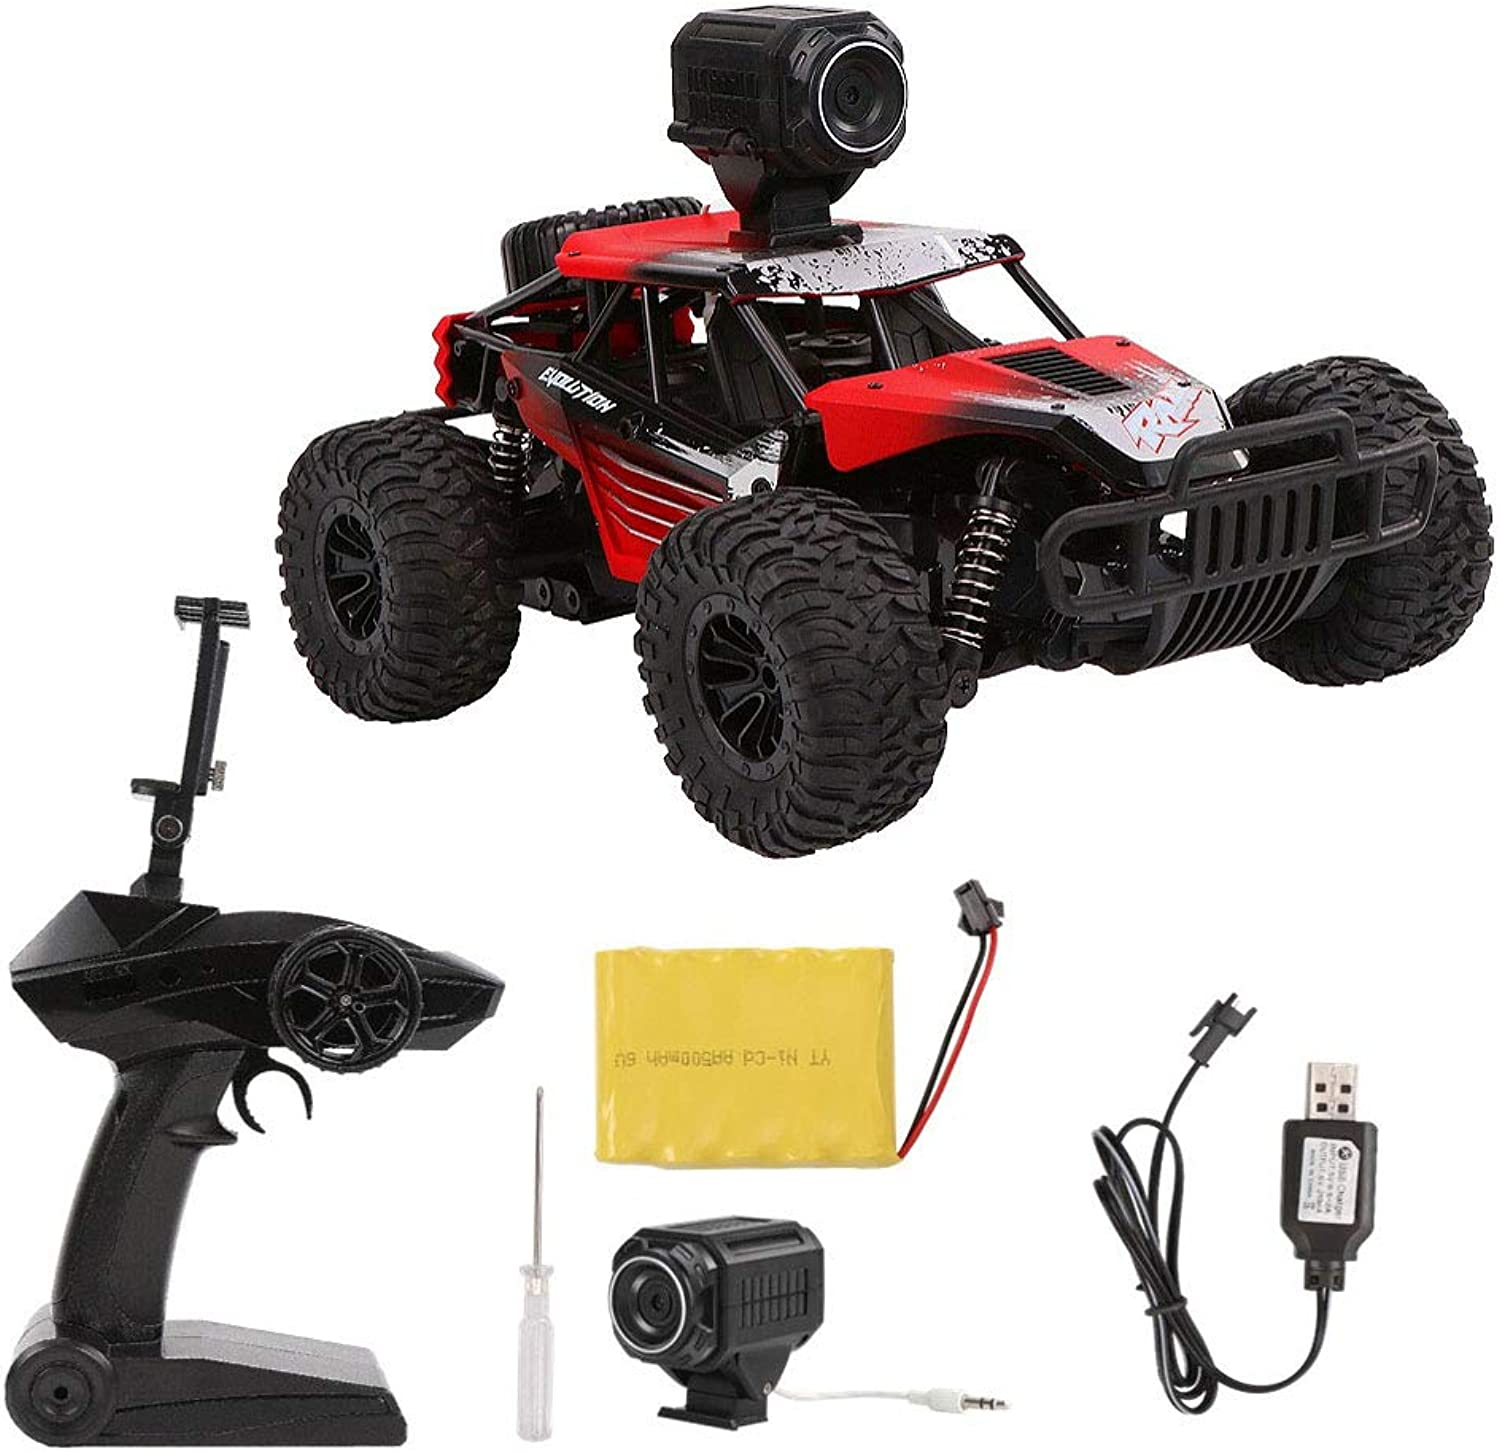 Ocamo RC Car HQ1801 1 18 2.4G 4WD OffRoad RC Electric Car Off Road Truck red With WIFI 720P camera